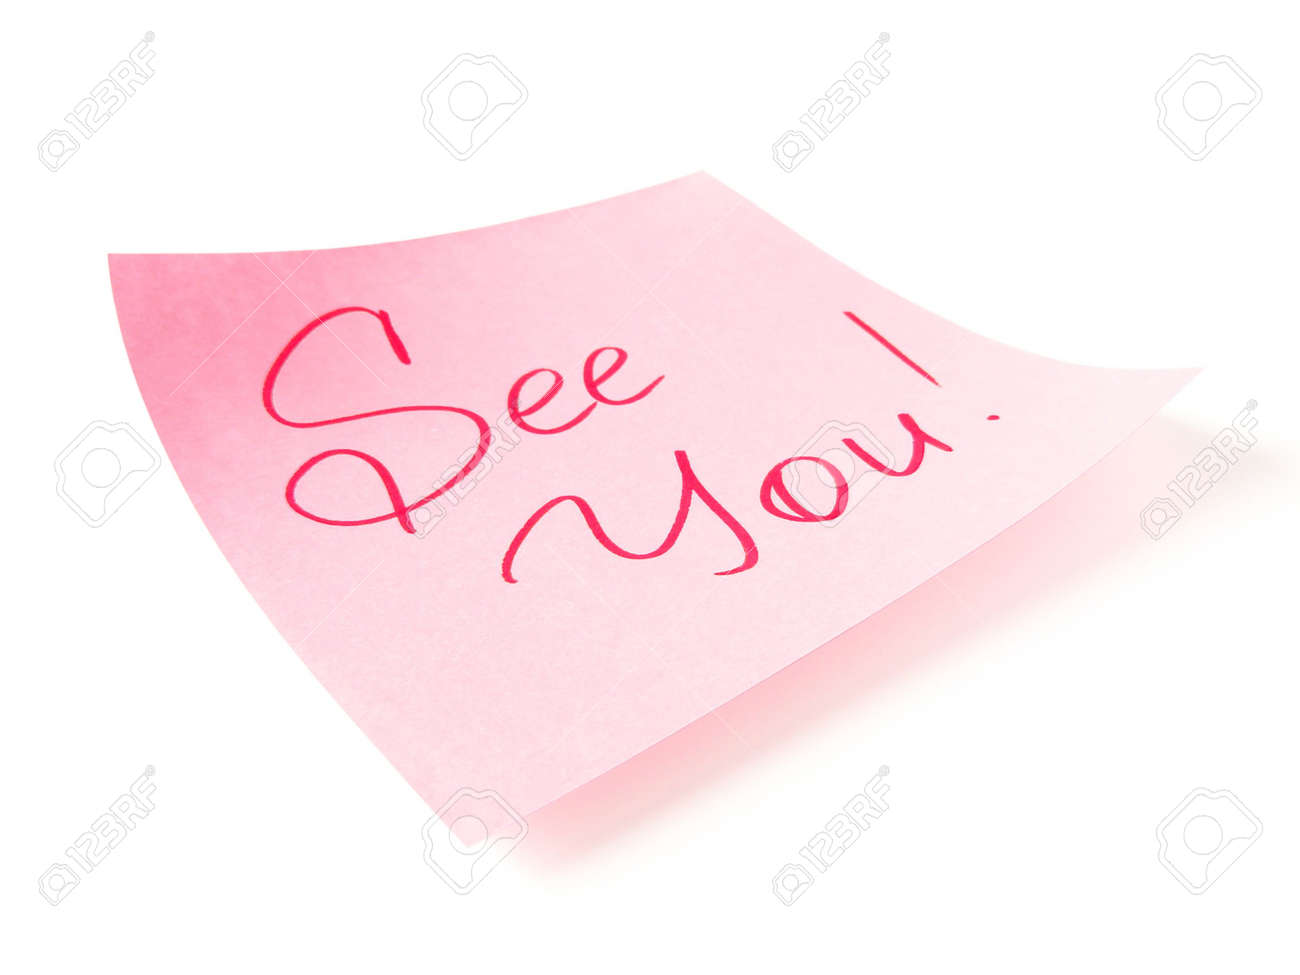 See you handwritten message on pink sticker Stock Photo - 5904605